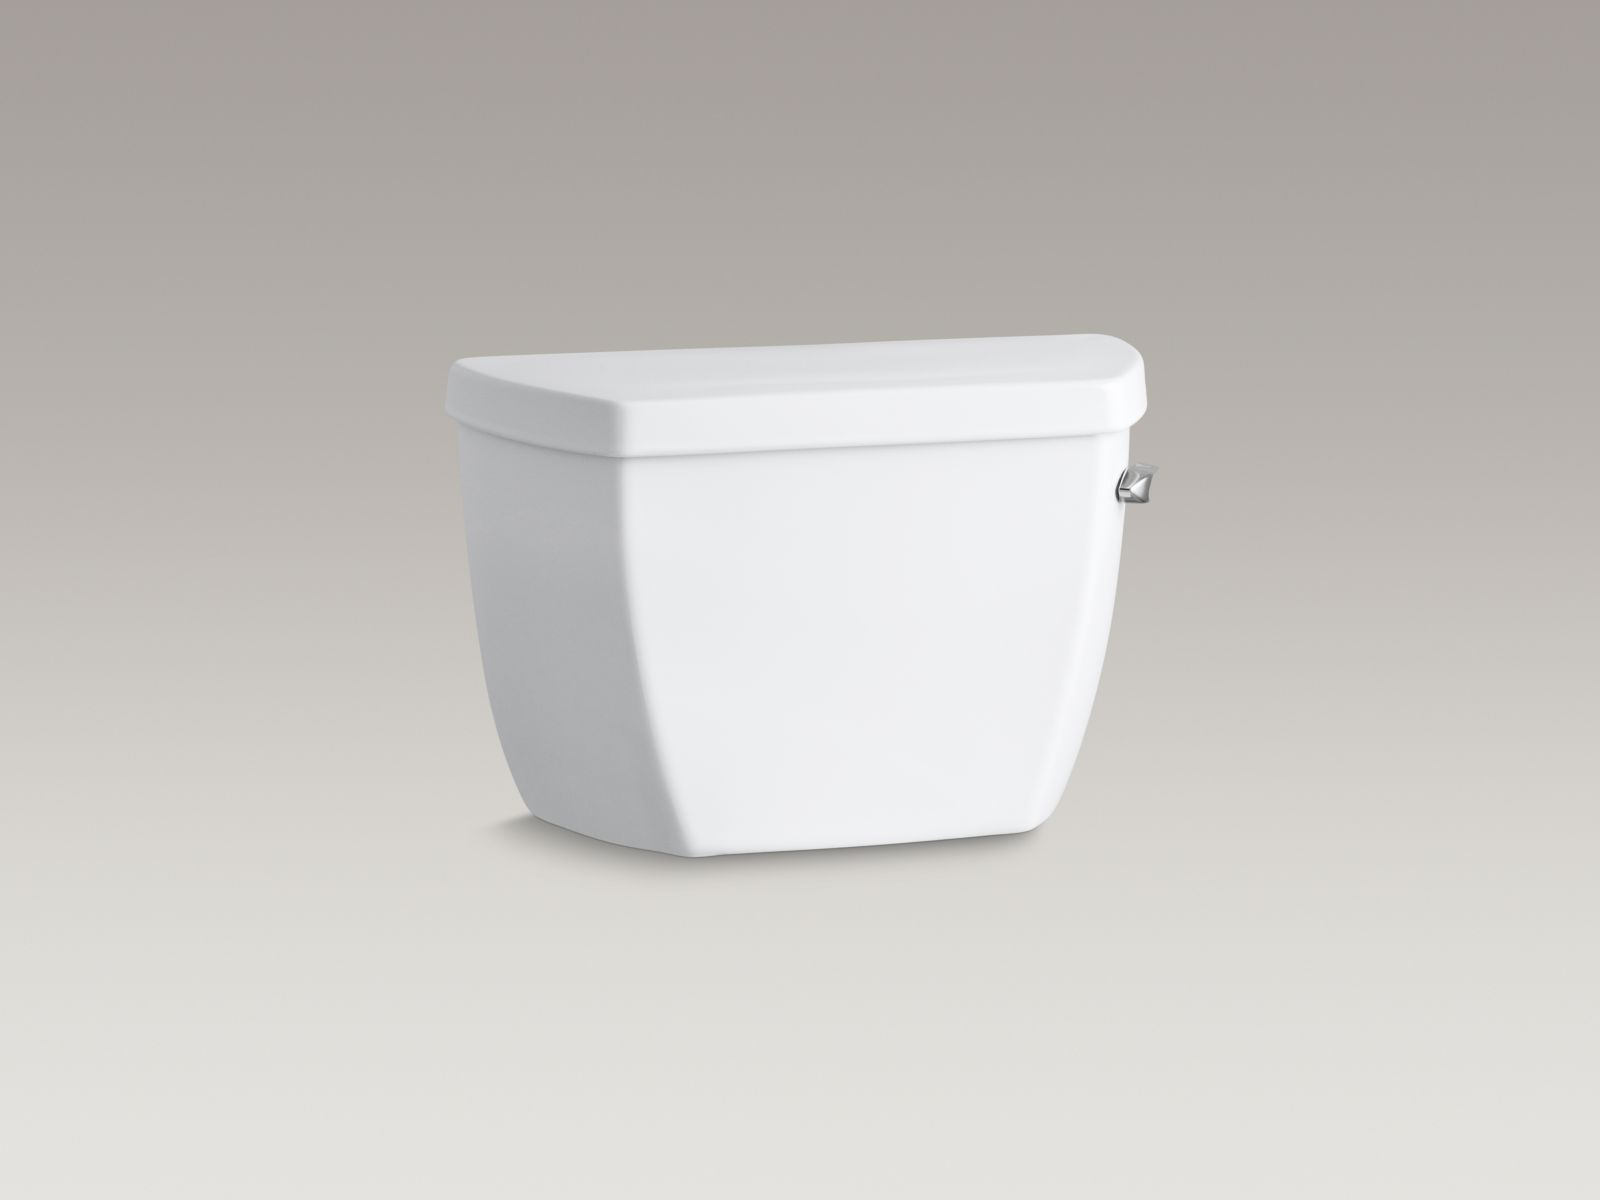 Kohler K-4645-TR-0 Highline Classic 1.6 GPF Pressure Lite Toilet Tank with Right-hand Trip Lever and Cover Locks White